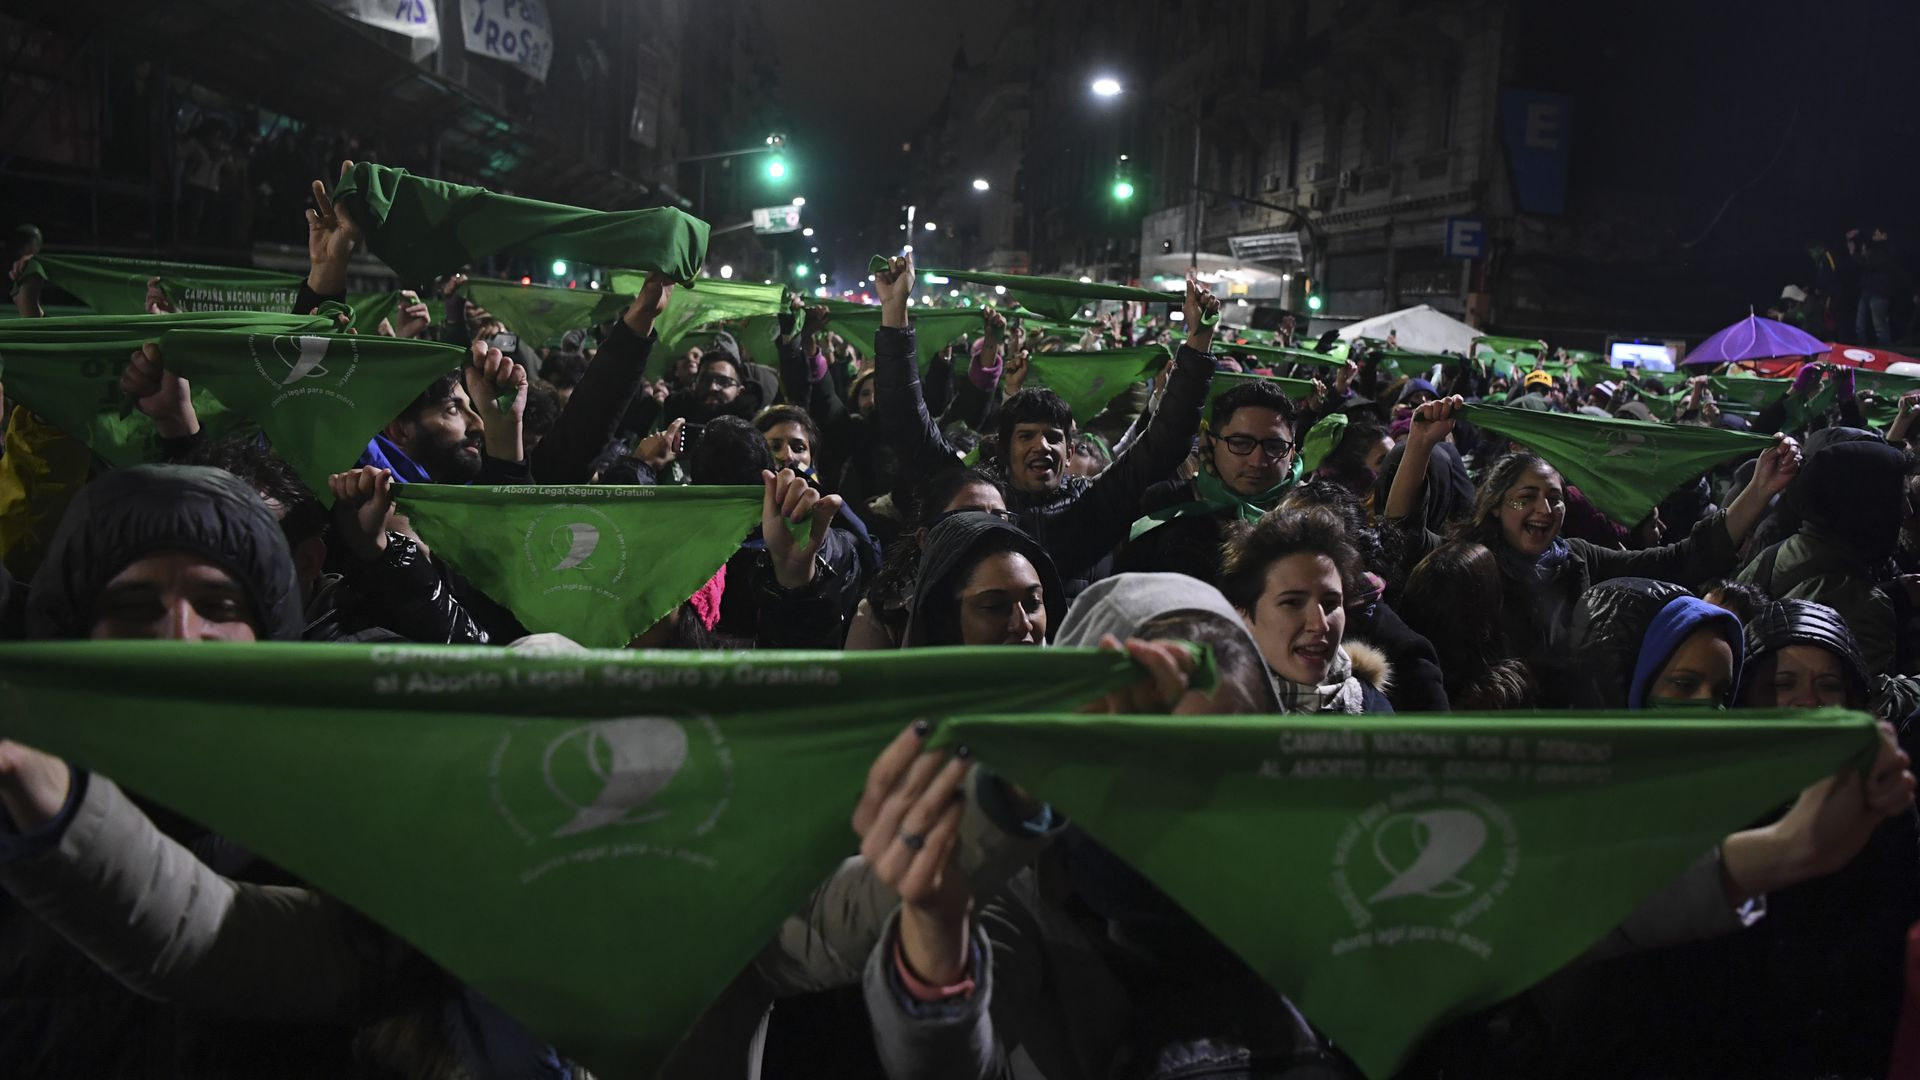 Argentine protestors hold up green bandanas